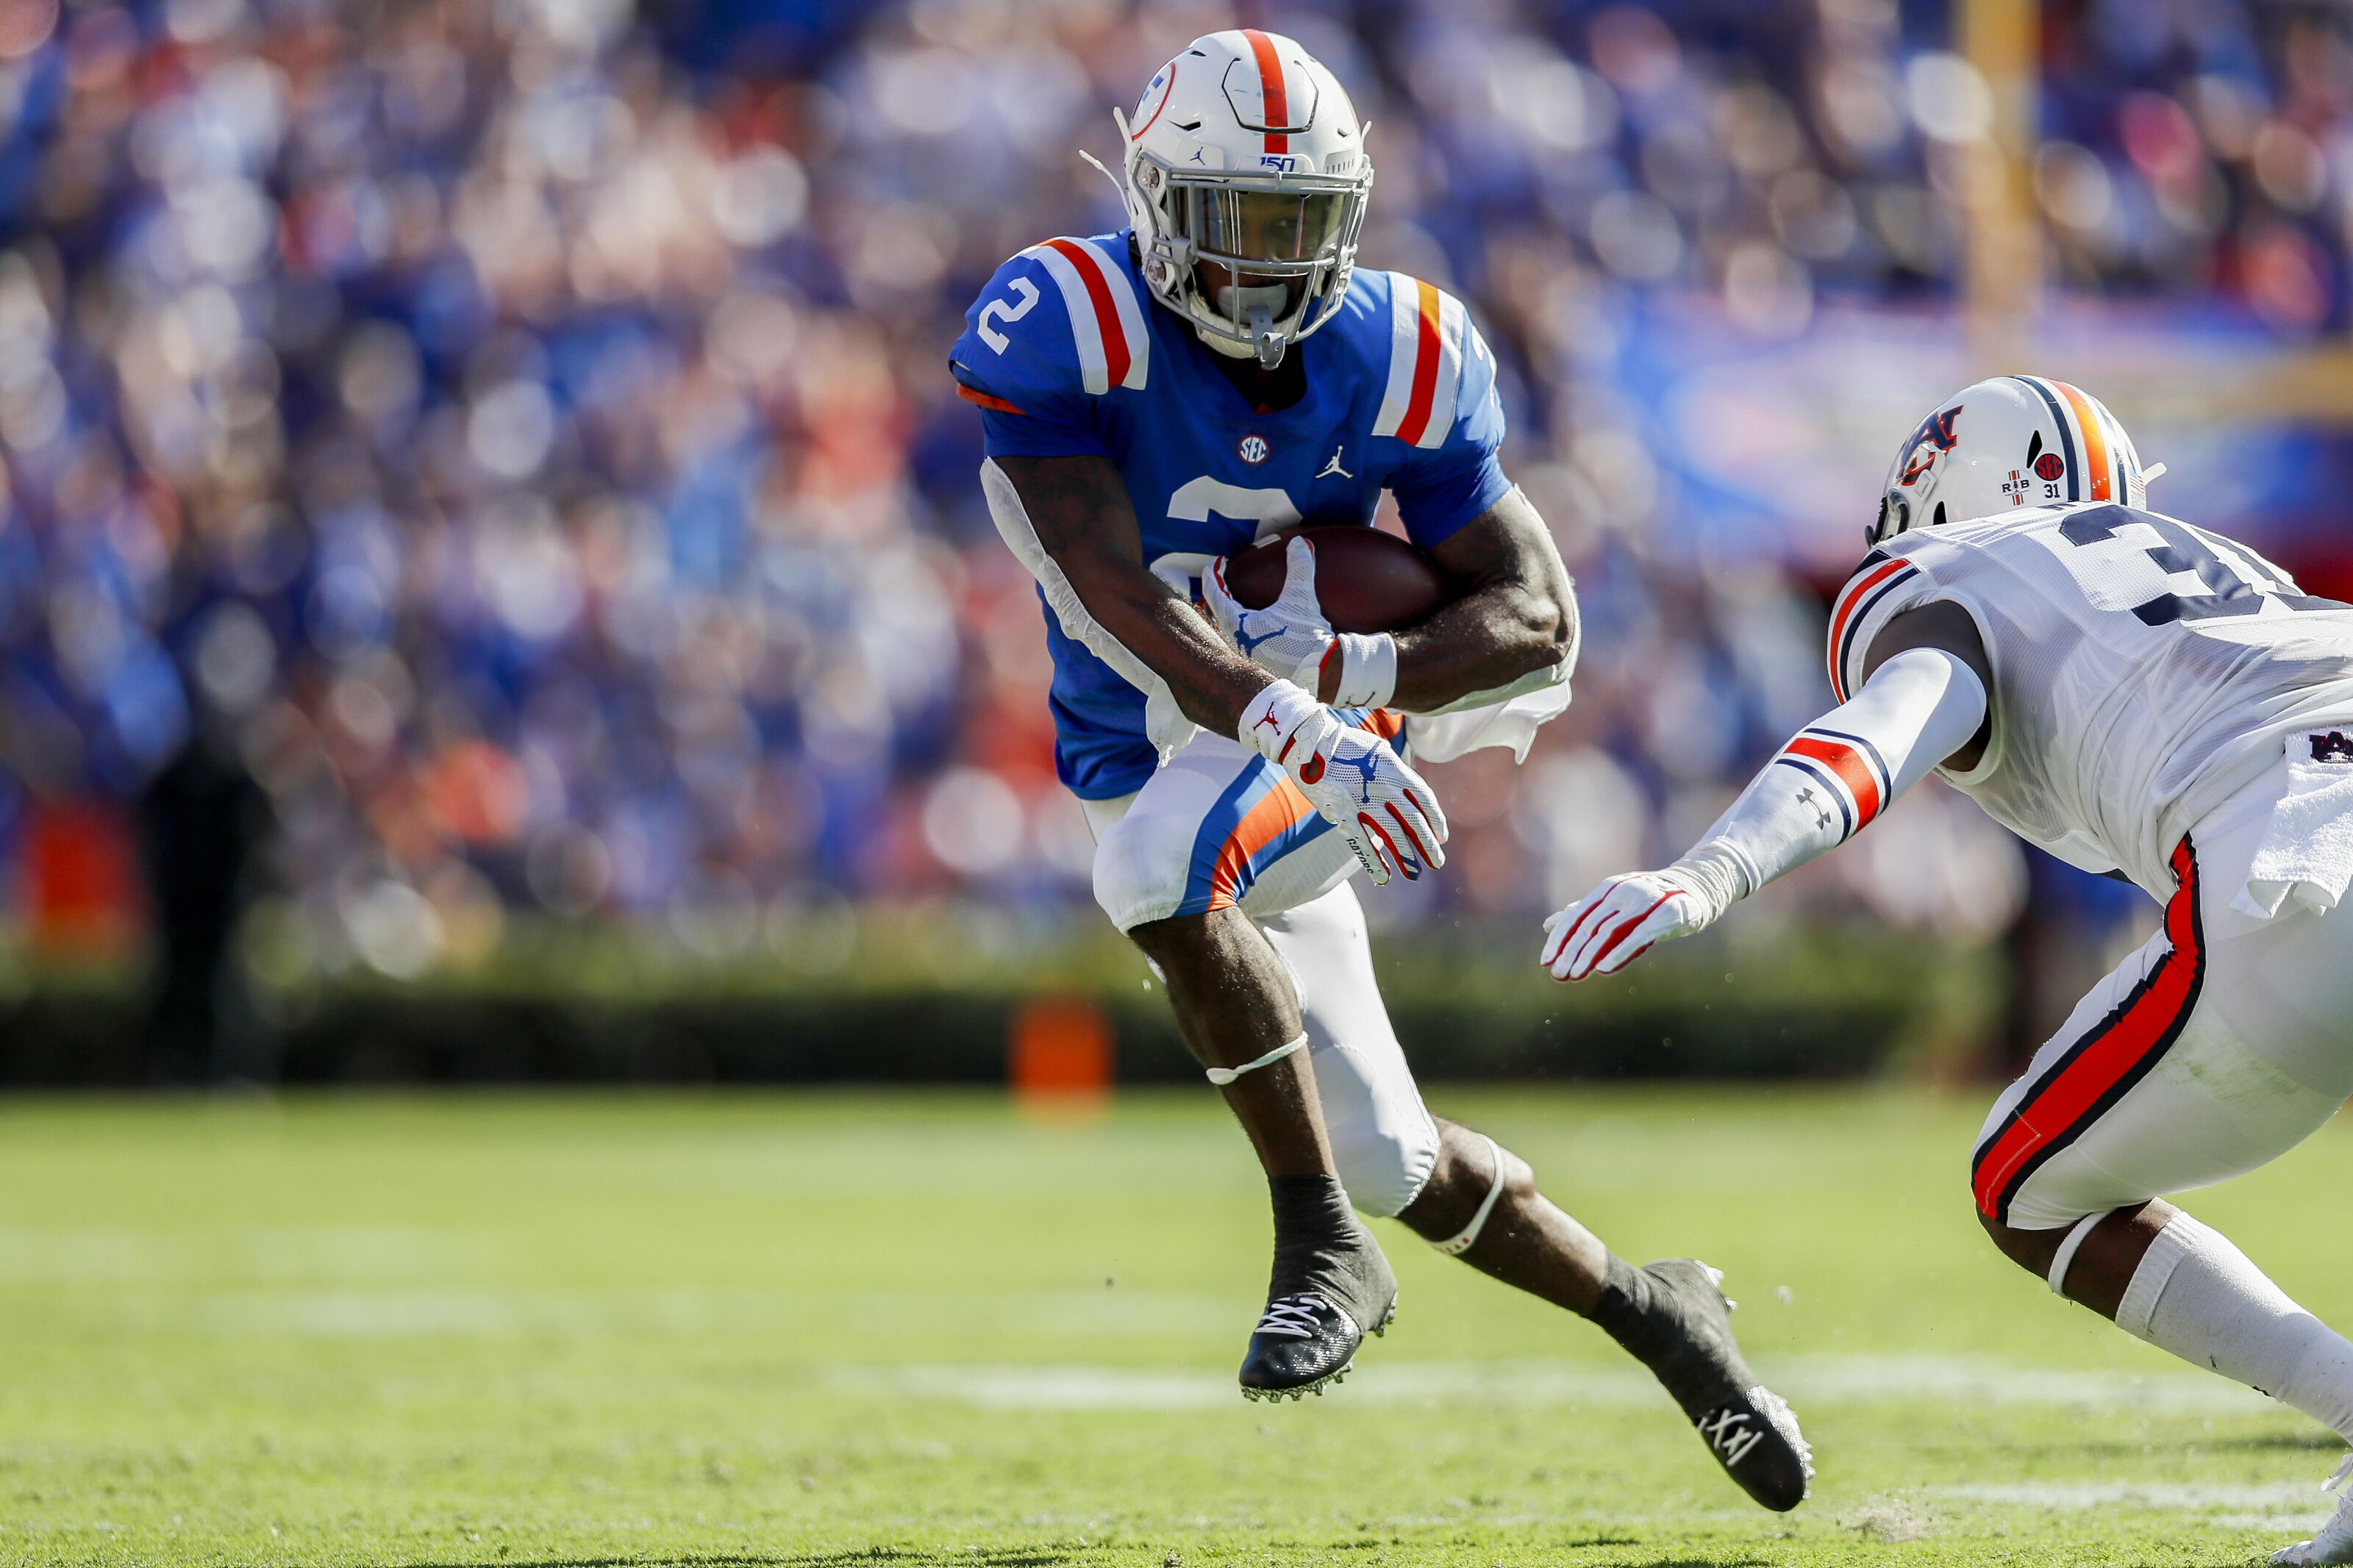 Florida football: Herbstreit tabs Gators to win the East